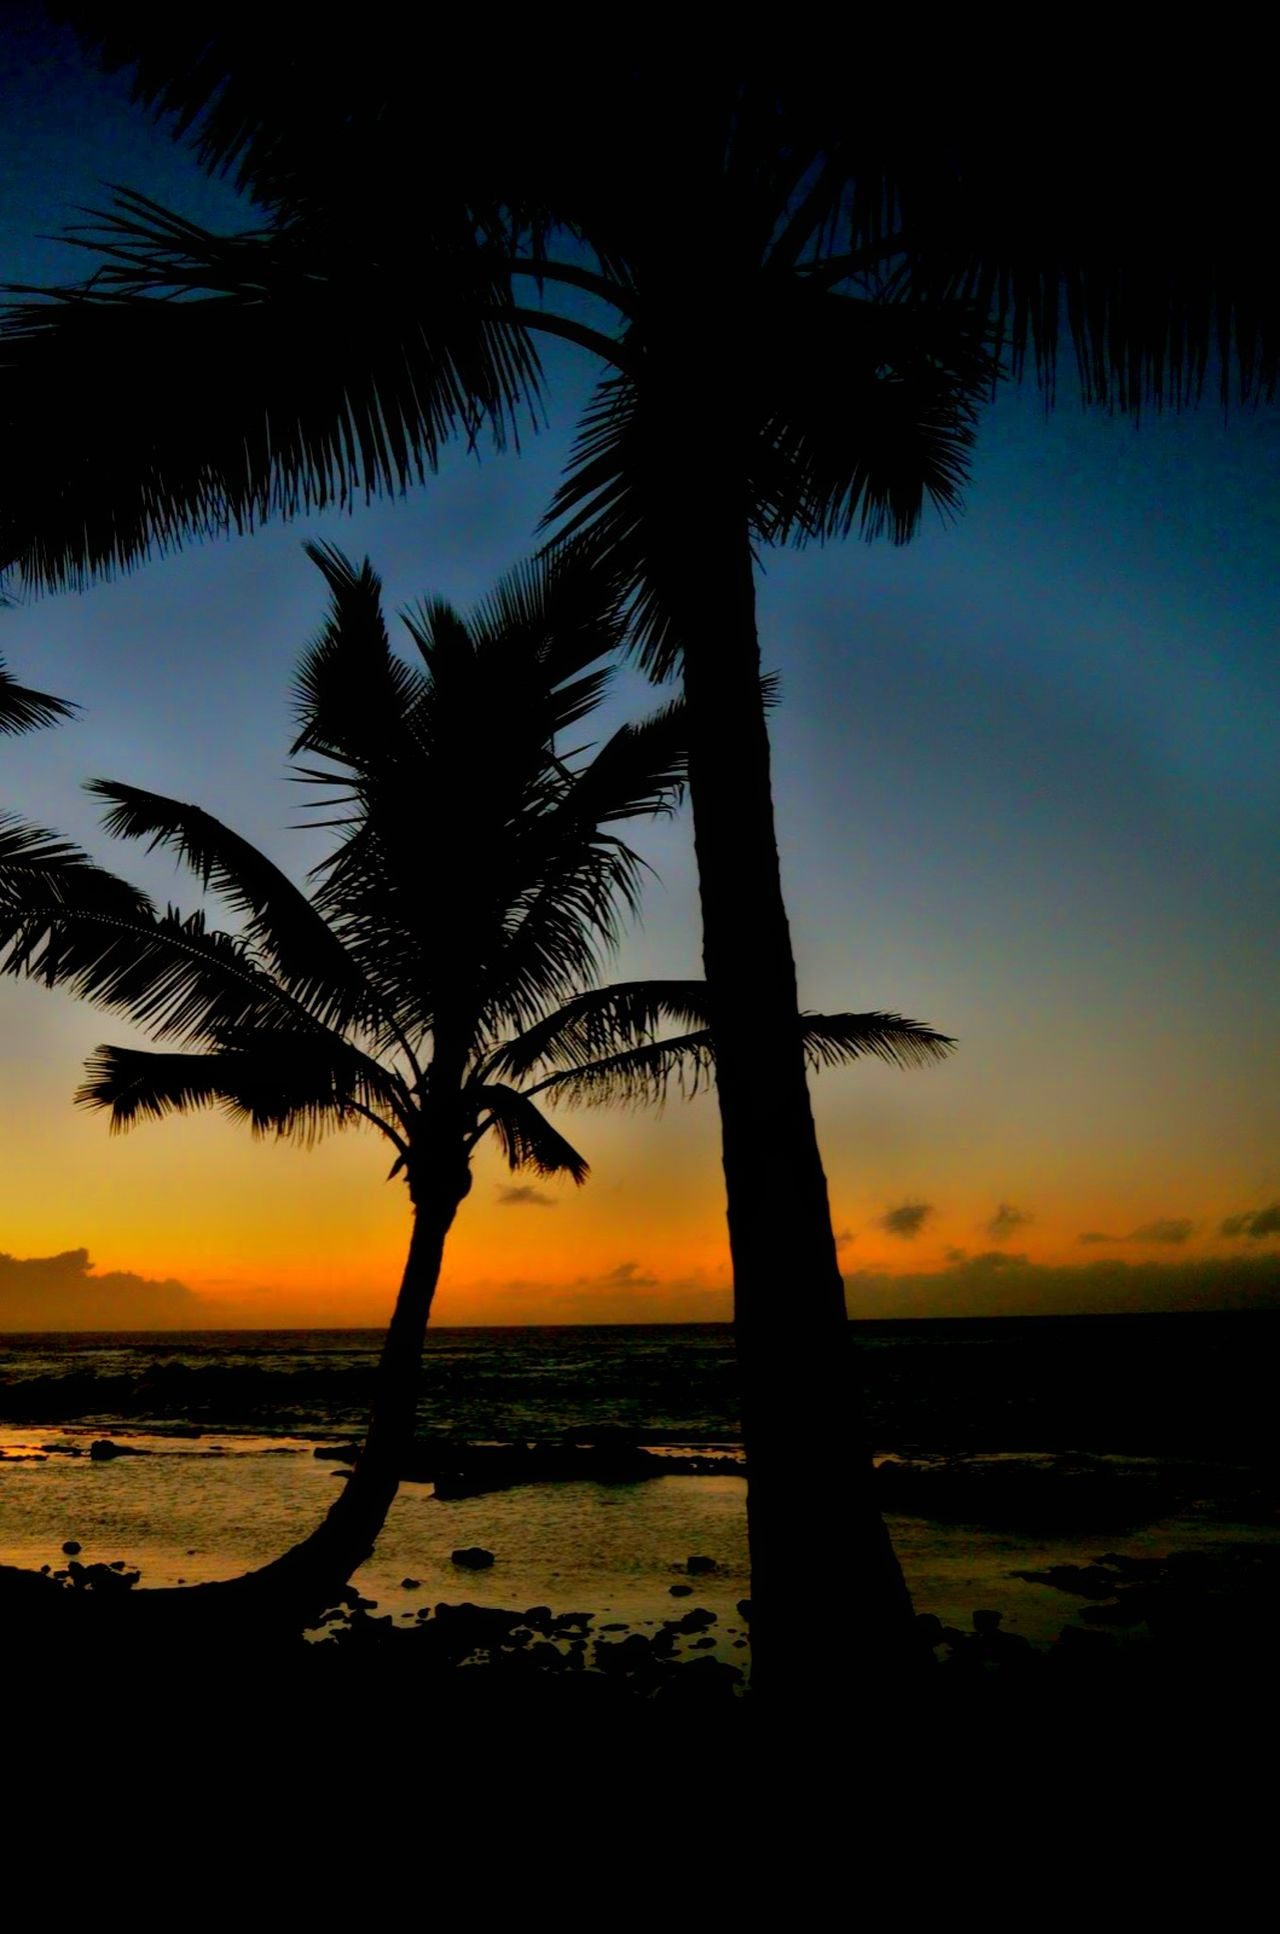 Beauty in nature. The Great Outdoors - 2016 EyeEm Awards EyeEm Best Shots Horizon Over Water Palm Tree Hawaii Sunset Orange Color Mauiphotography Sunset Nature Tranquility Hawaii Life Scenics Beauty In Nature Travel Destinations Hawaii Tourism Paintedsky Travel Photography Tranquil Scene Maui Sunset Landscape No People Sun Non-urban Scene Outdoors